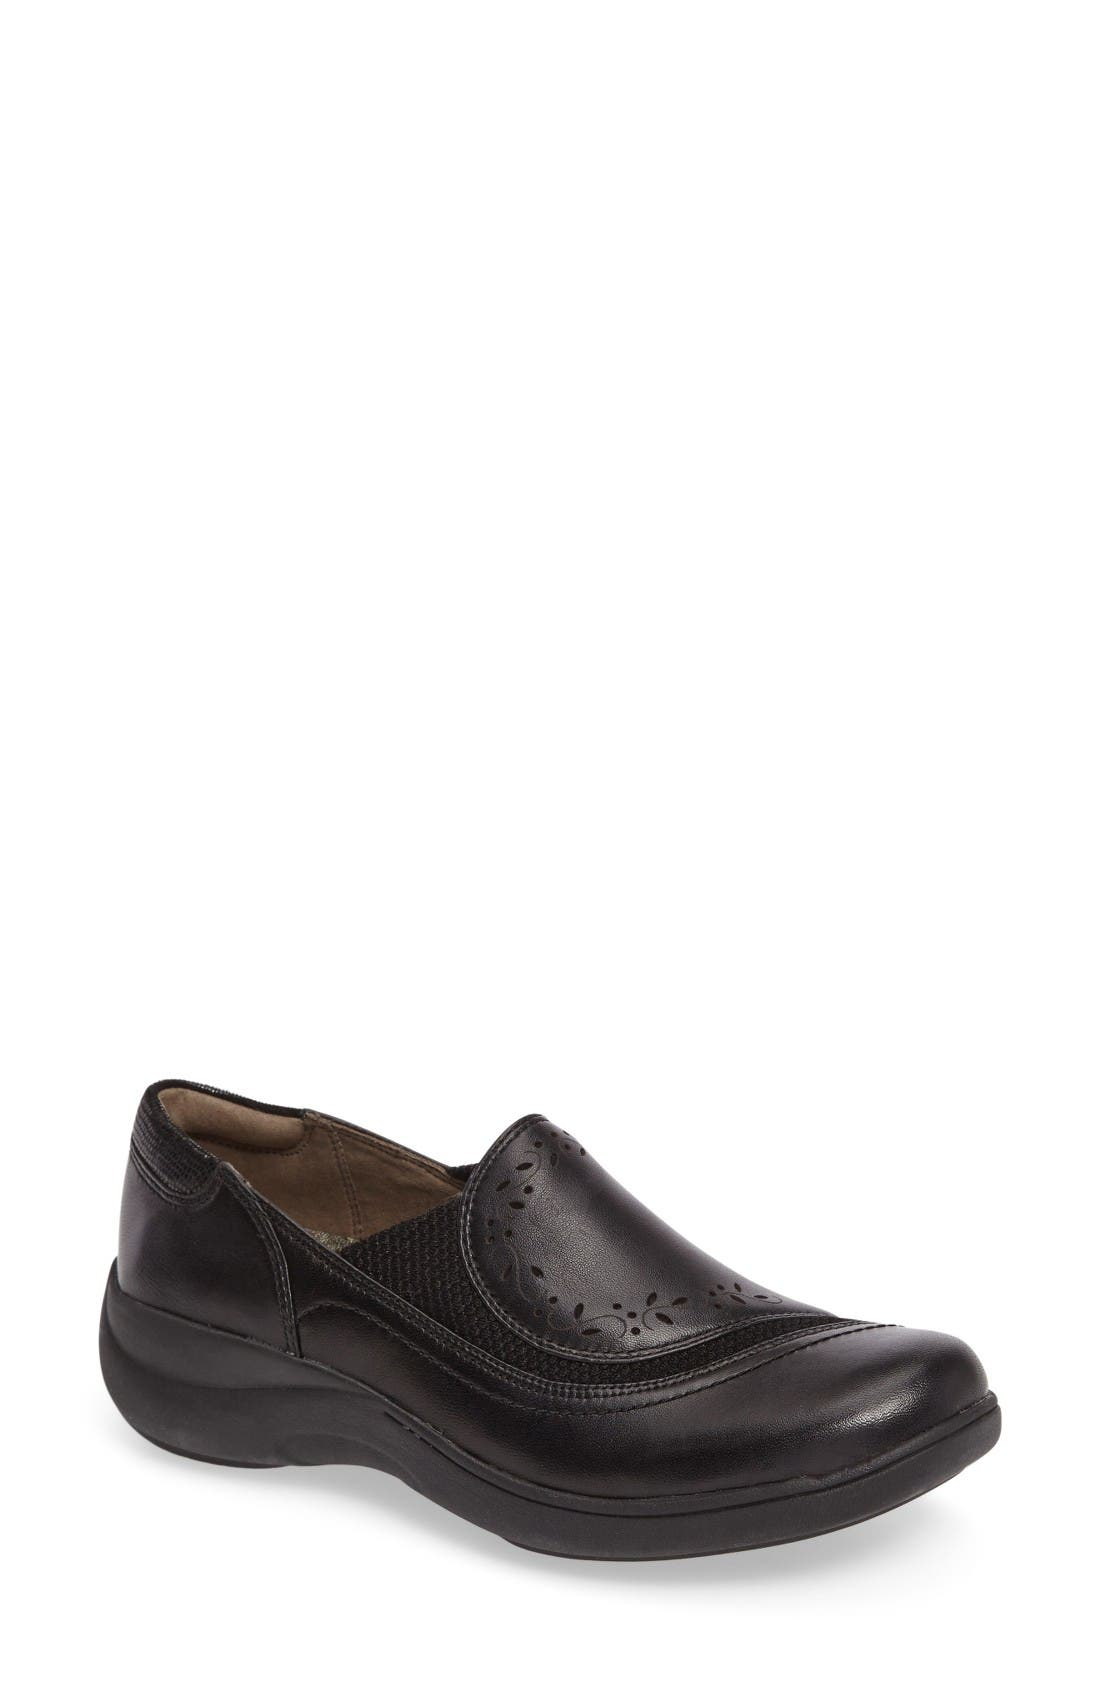 Revsolace Flat,                             Main thumbnail 1, color,                             Black Leather